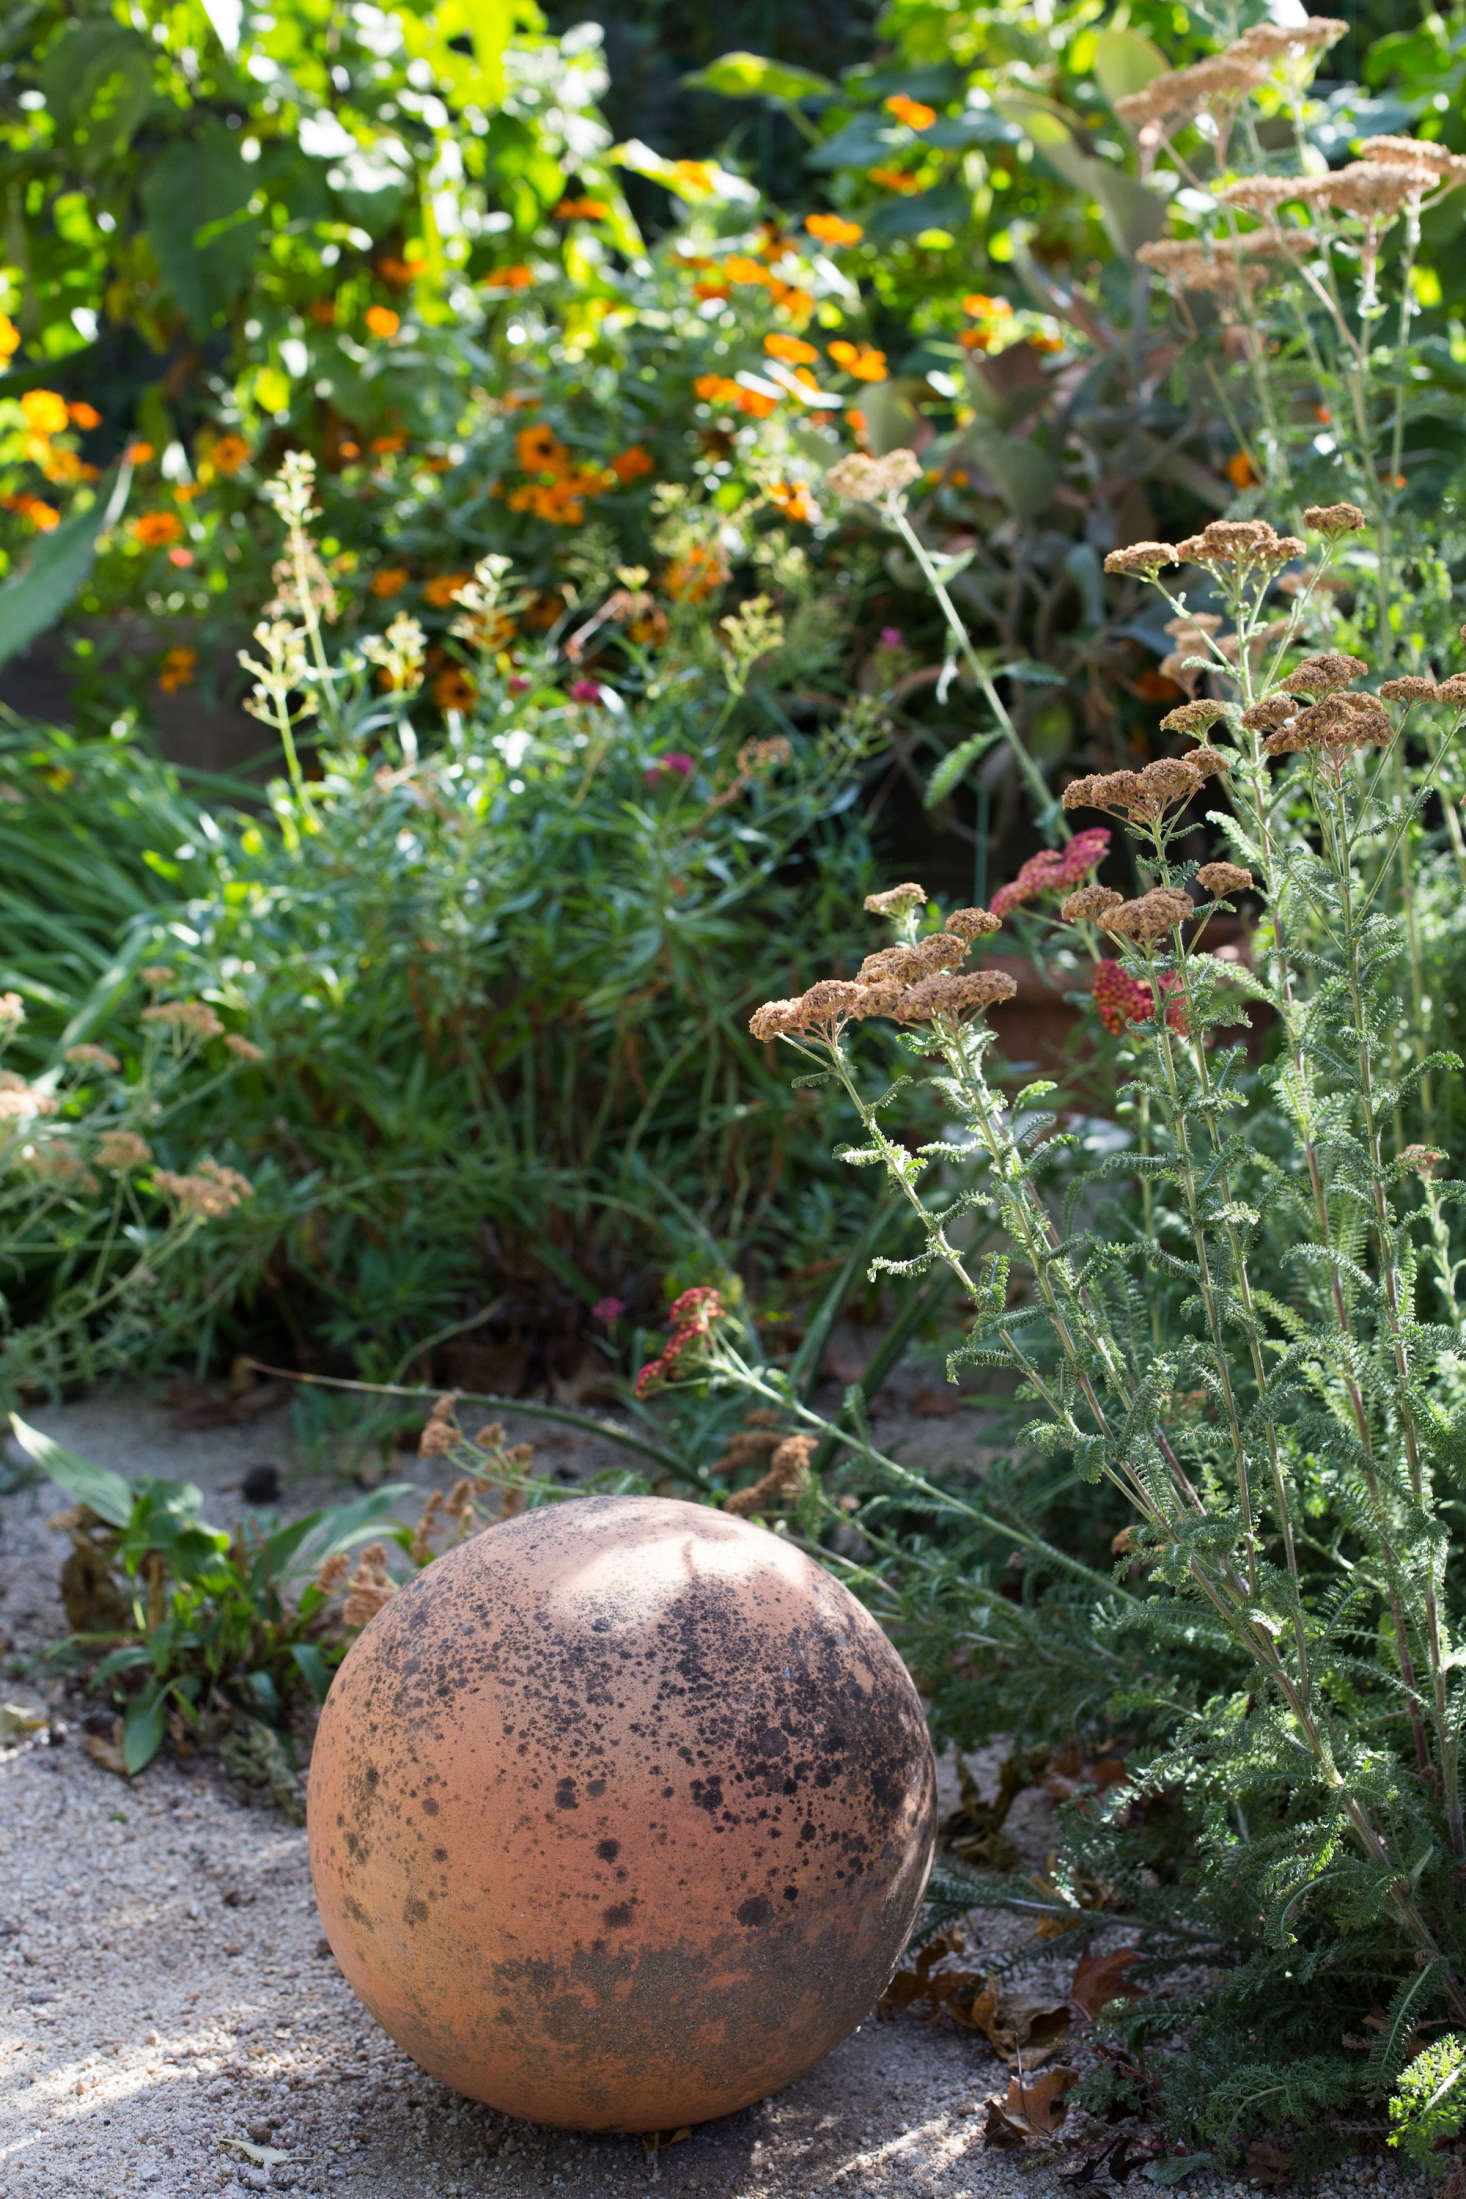 Low-water perennials such as yarrow mingle with succulents on the edge of the edible garden.